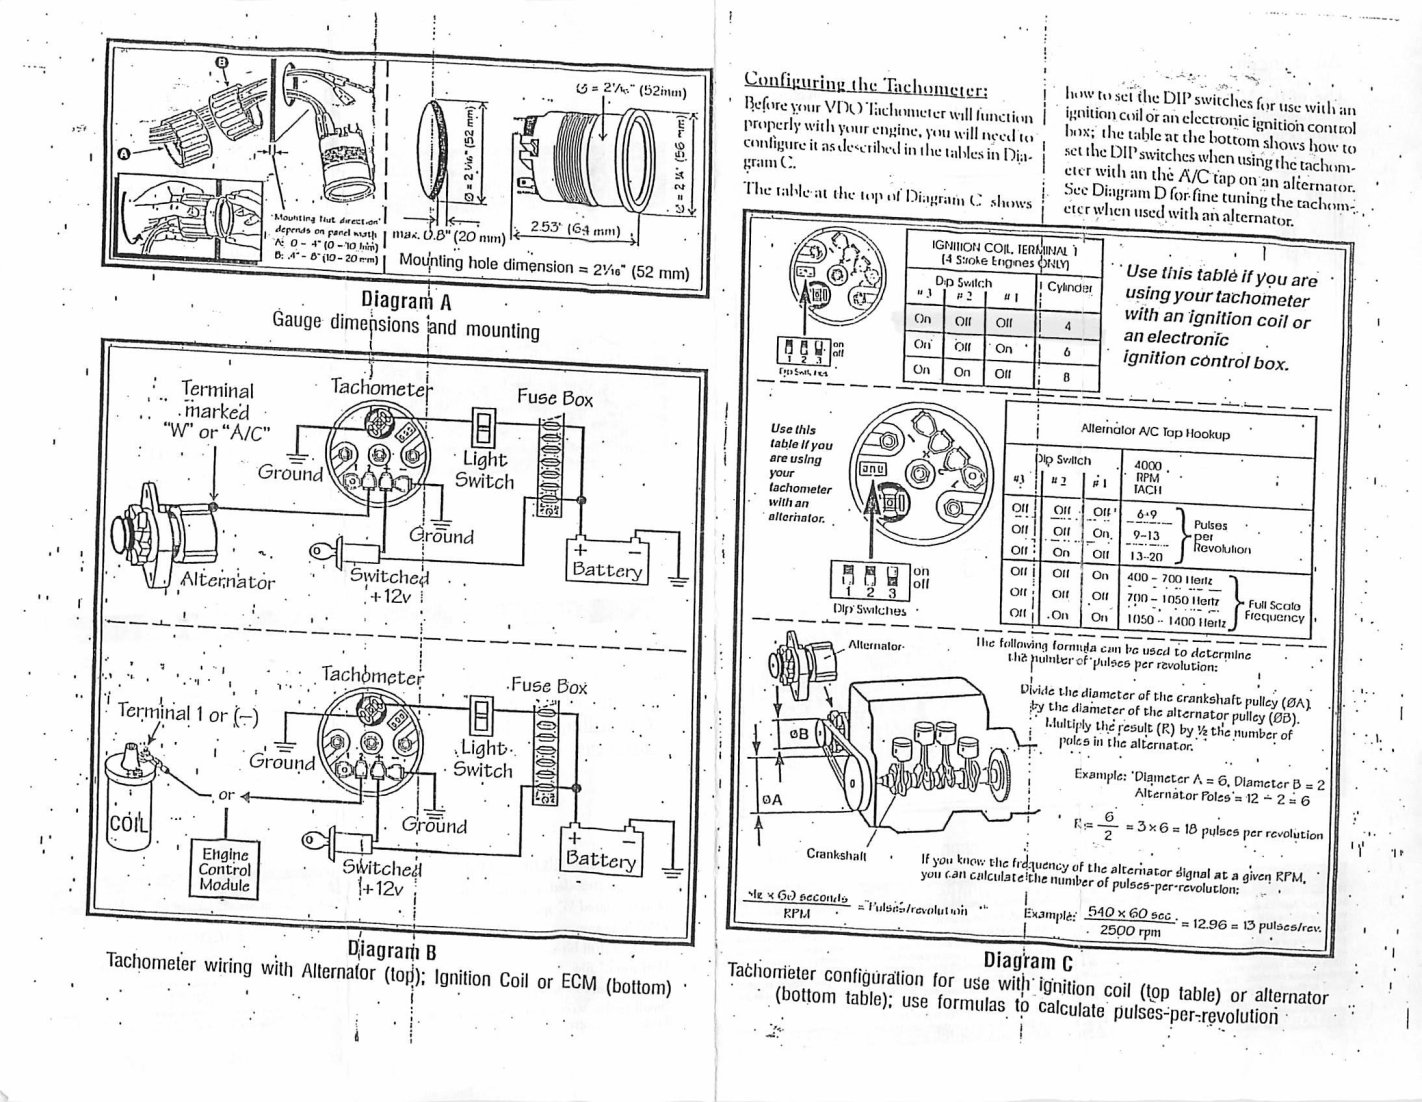 vdo kitas wiring diagram vdo tachometer wiring diagram 1 min thesamba.com :: vdo tachometer instructions #6